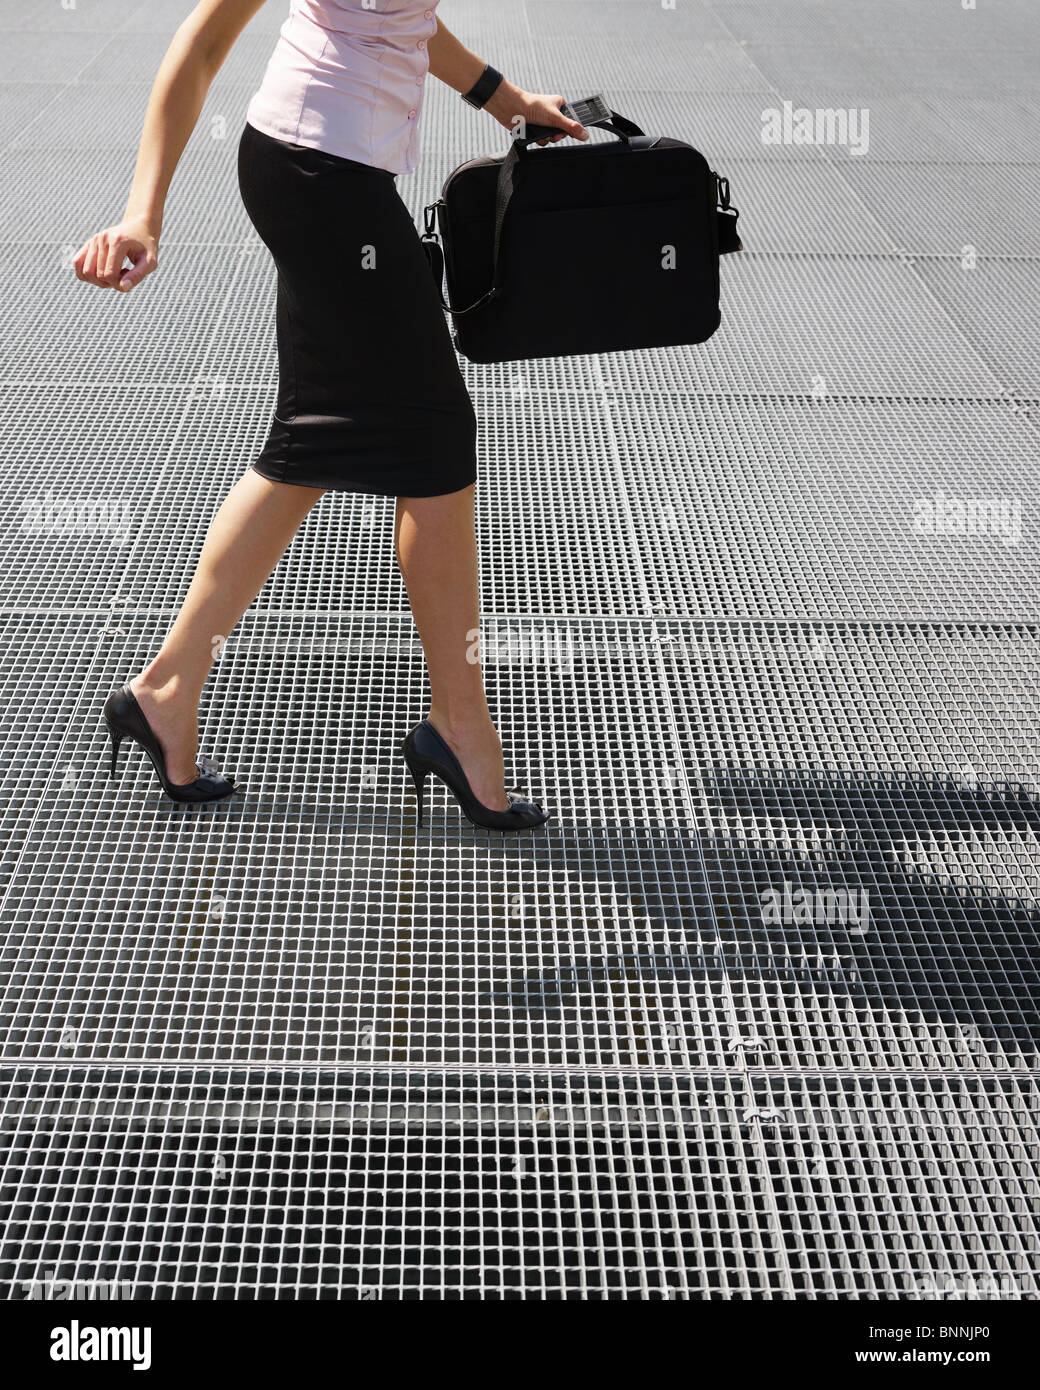 side view of business woman balancing on high heels. Copy space - Stock Image